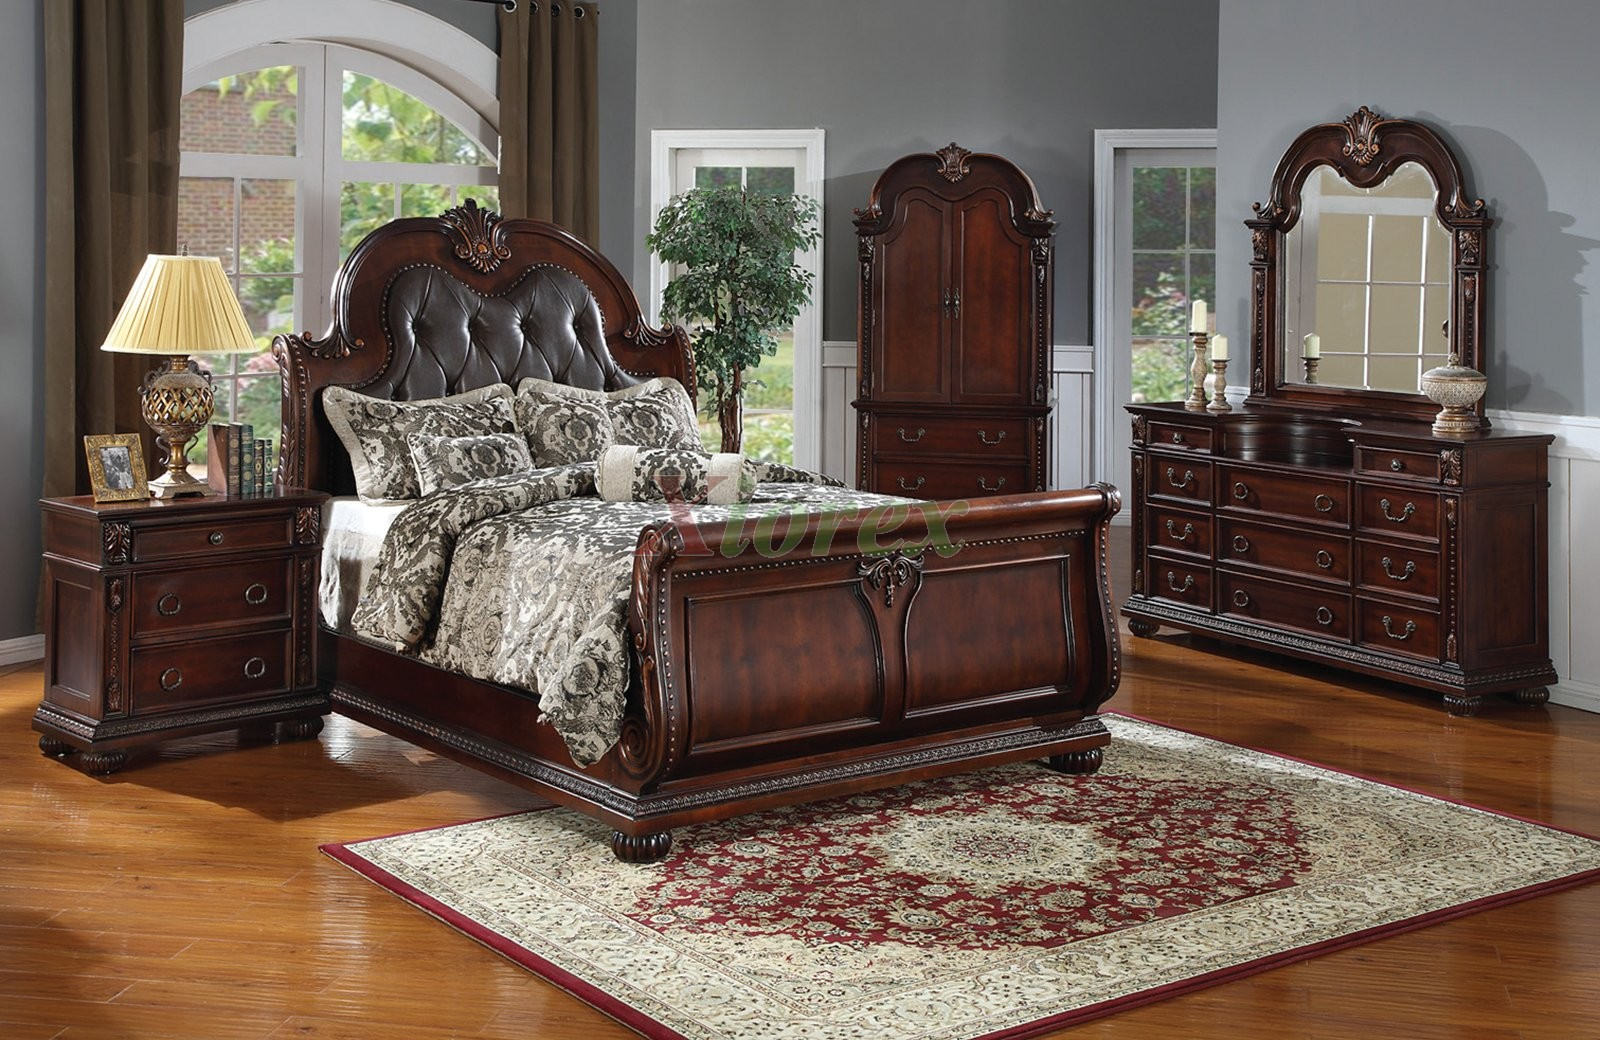 Bed headboard leather - Sleigh Bedroom Furniture Set With Leather Headboard 119 Xiorex Not Available In The Us